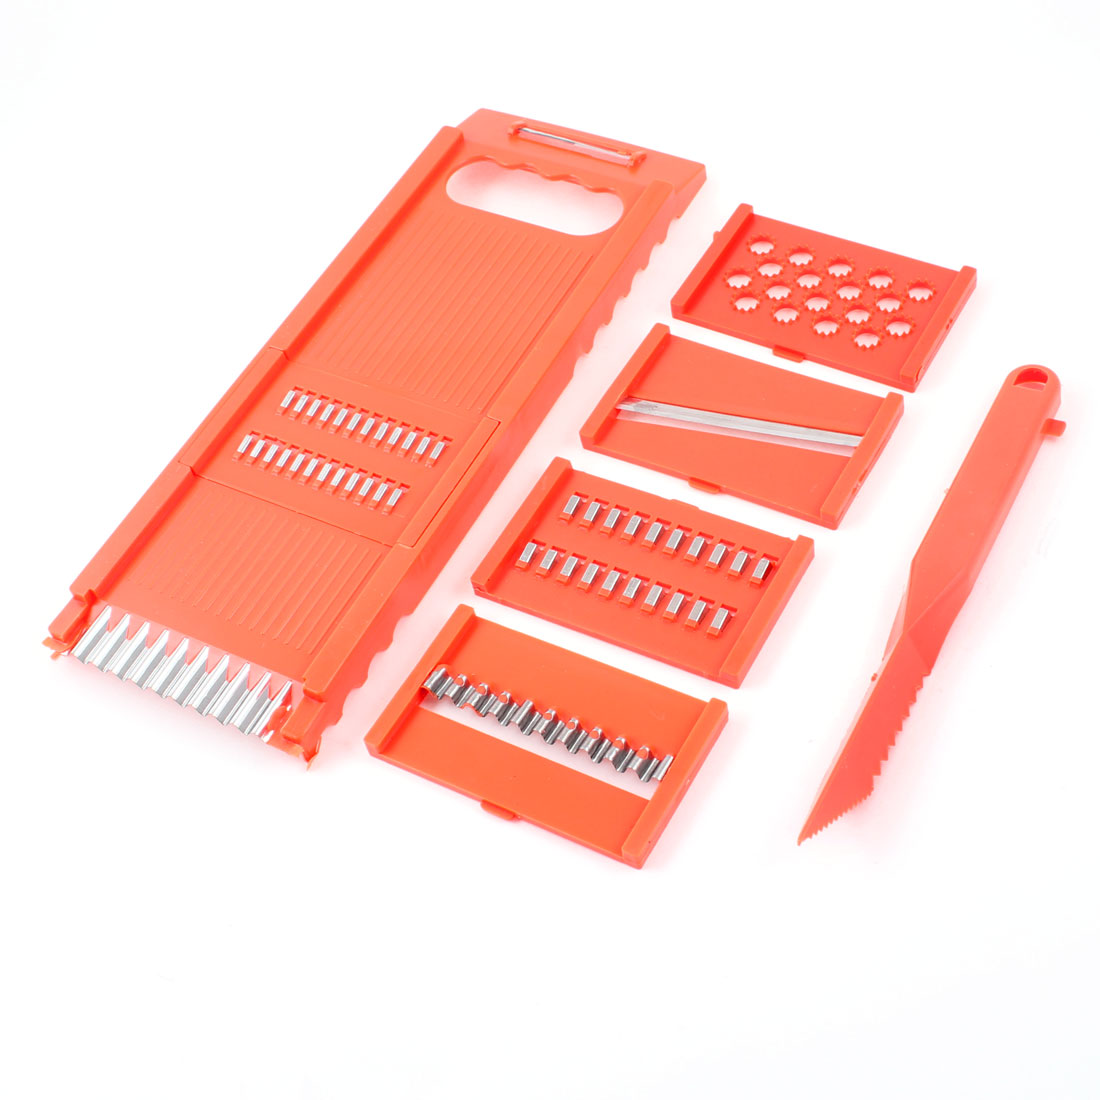 6 Pcs Orange Red Plastic Multifuctional Vegetable Potato Grater Peeler Set